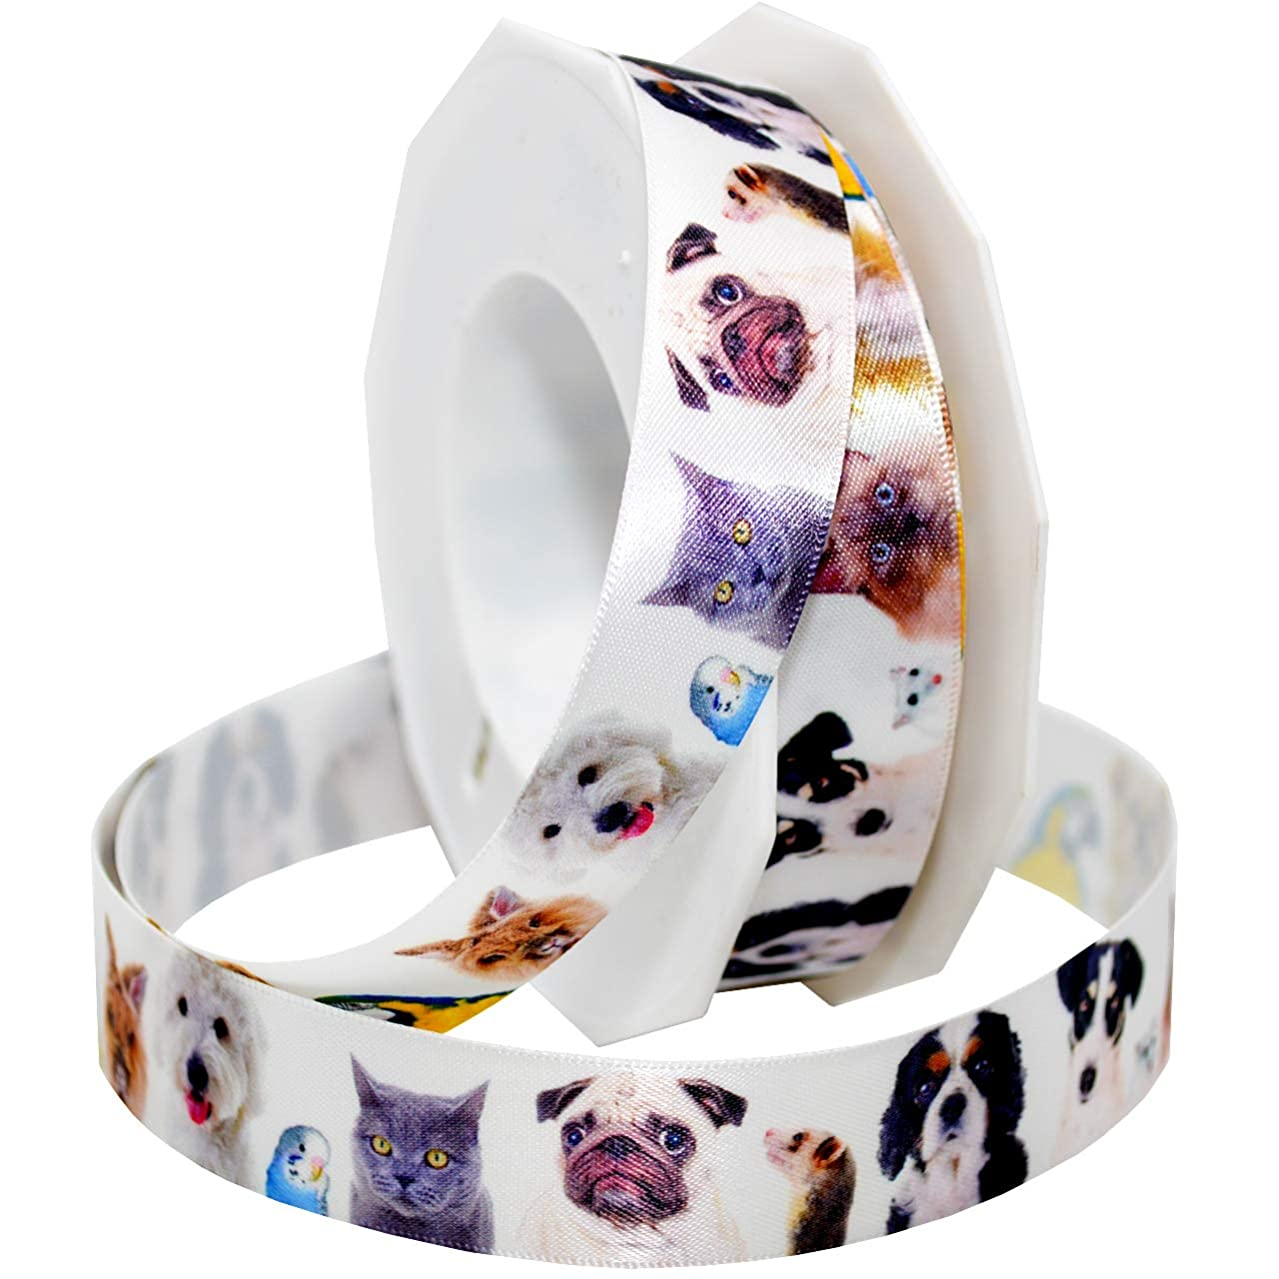 Morex Ribbon 5682 Precious Pets - All Animals Ribbon, 7/8 inch by 20 Yards, White